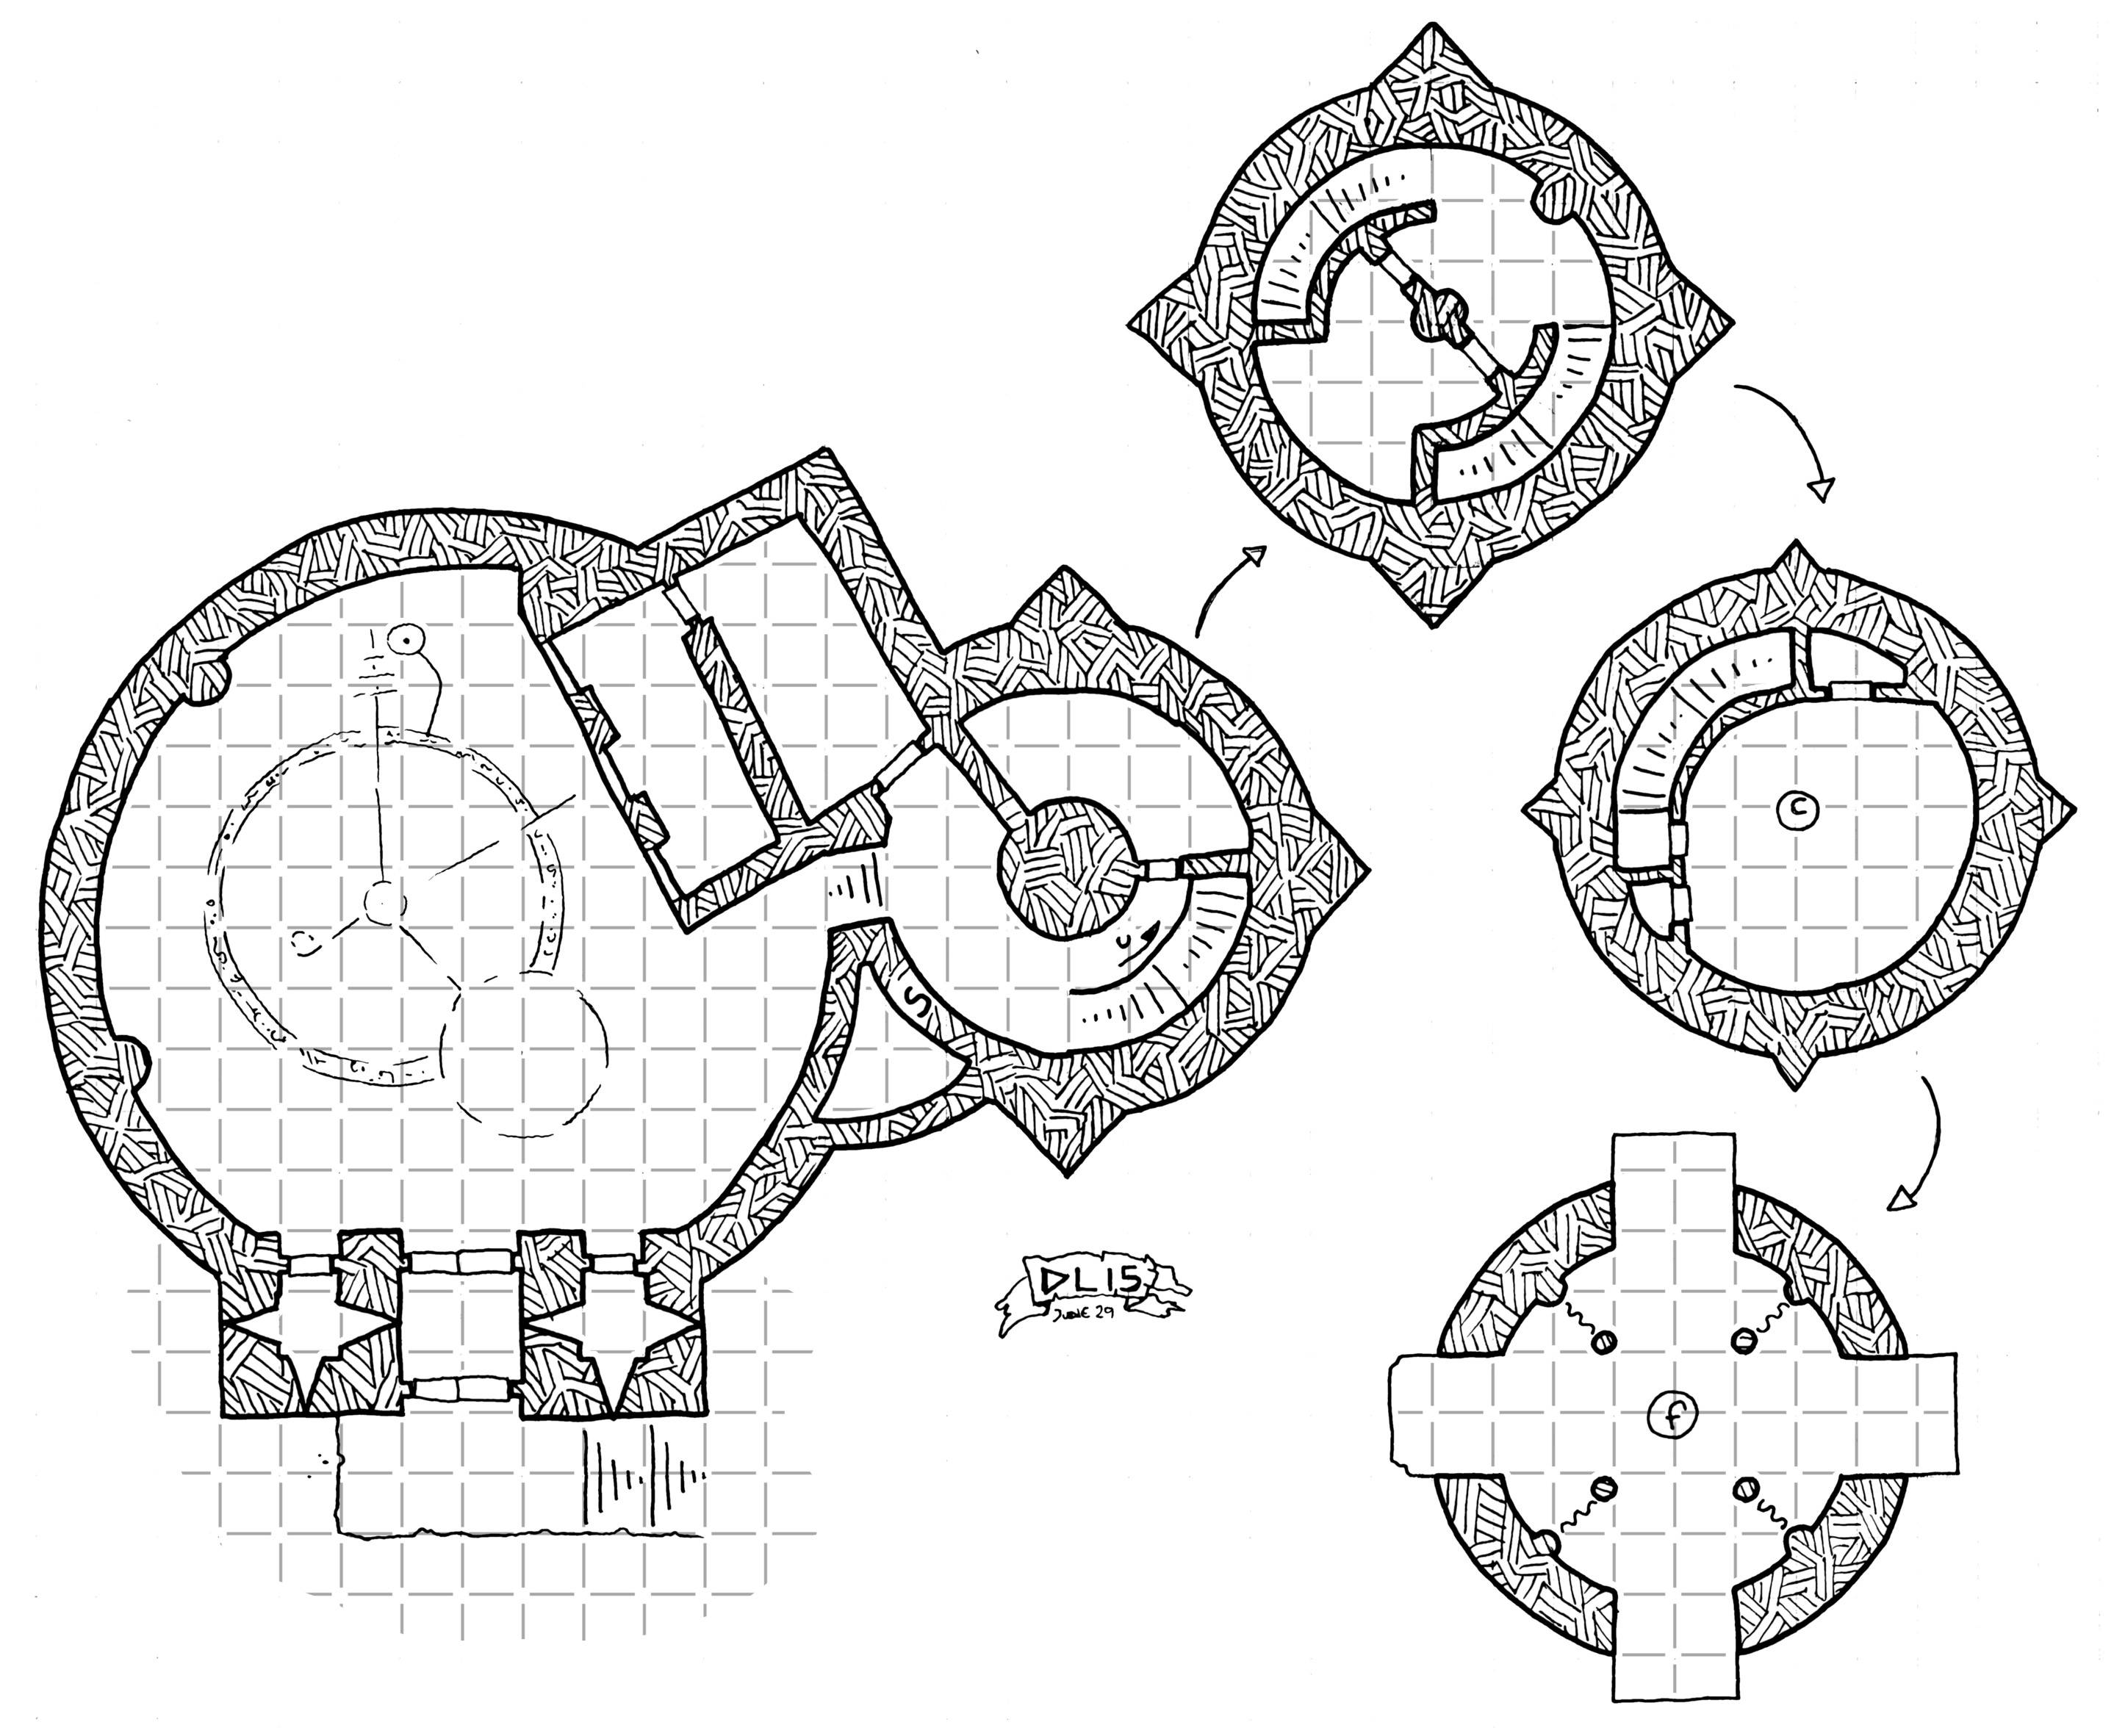 Tuesday Map] The Mad Warlock's Dome & Tower | Dyson's